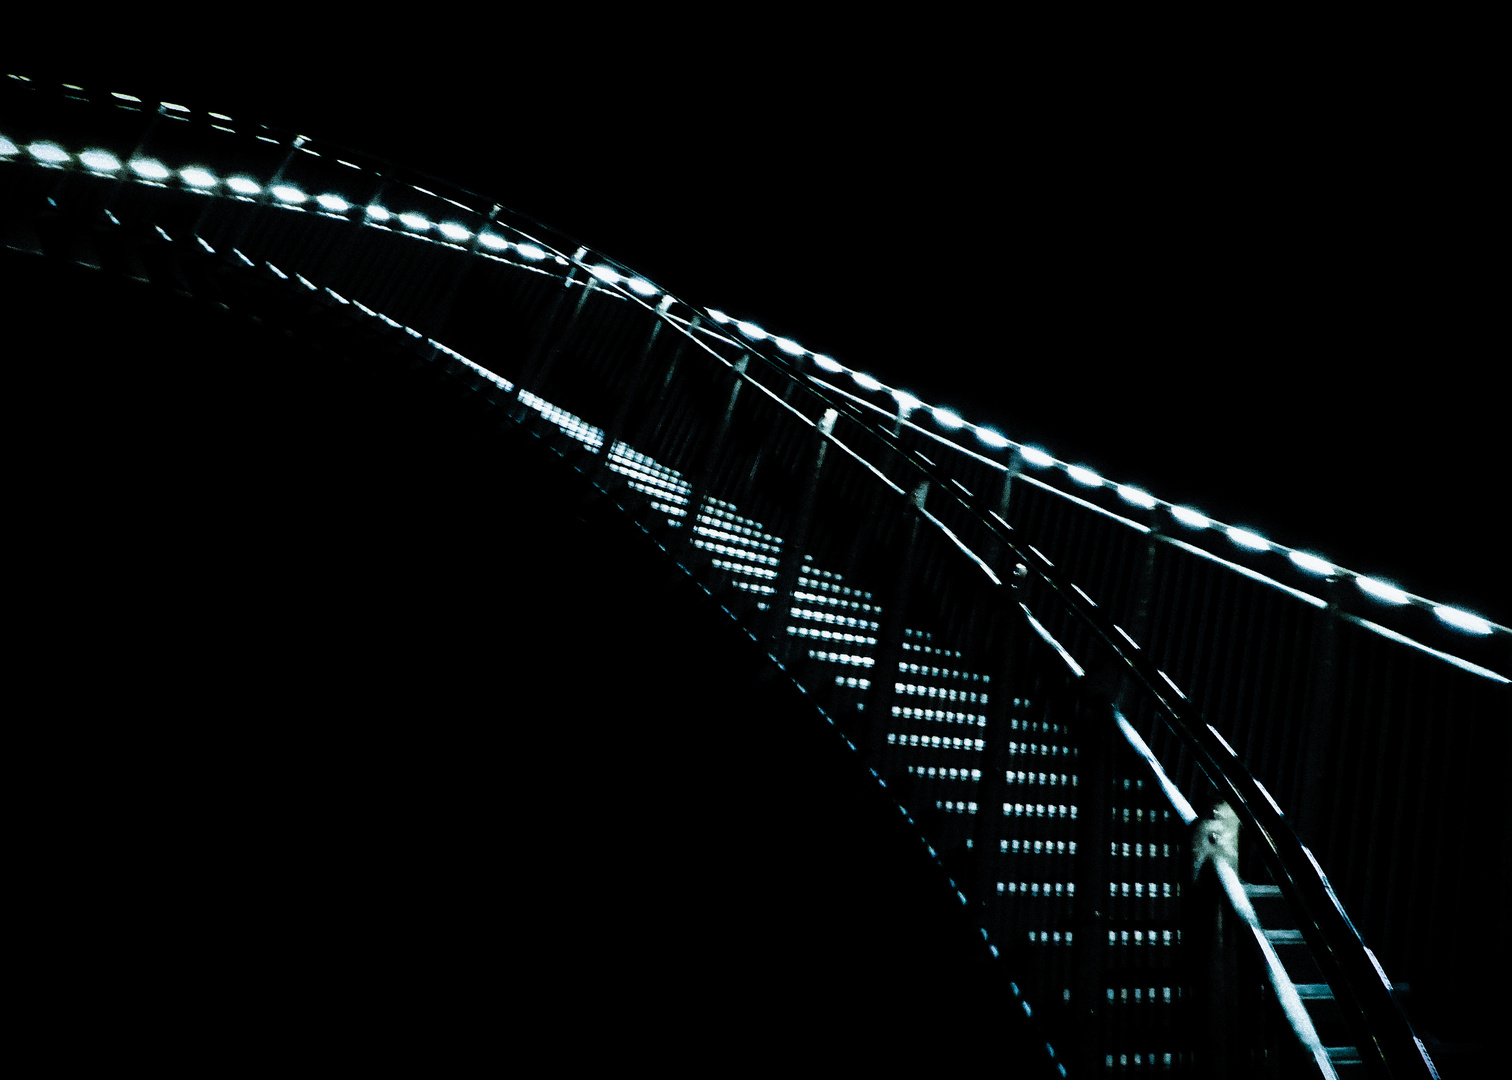 ___---- STAIRWAY TO HEAVEN ----___